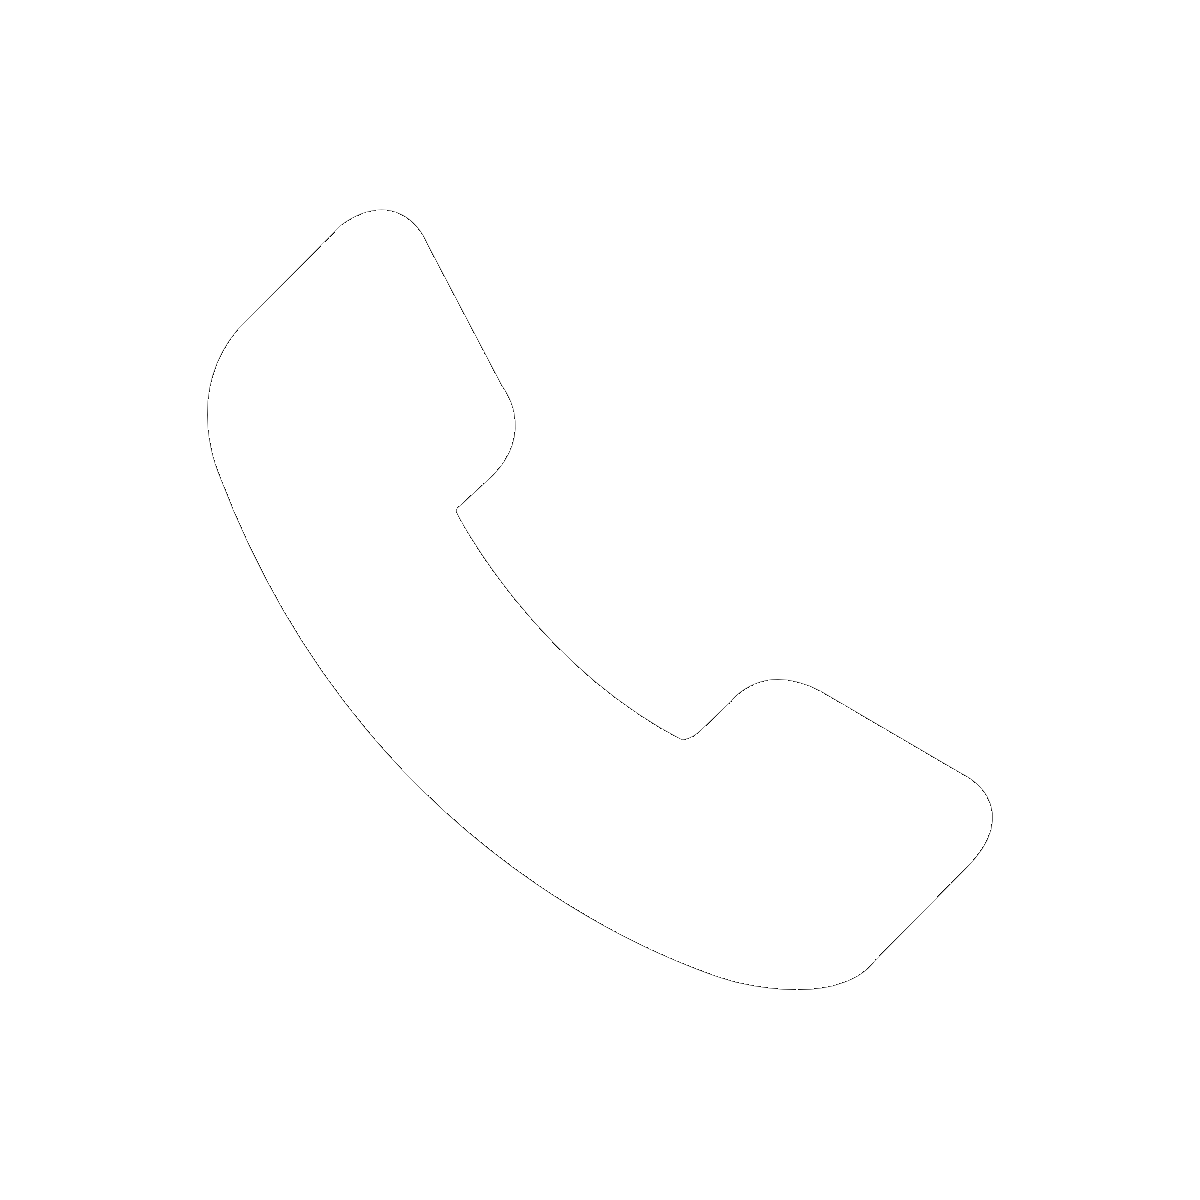 Symbol The Telephone